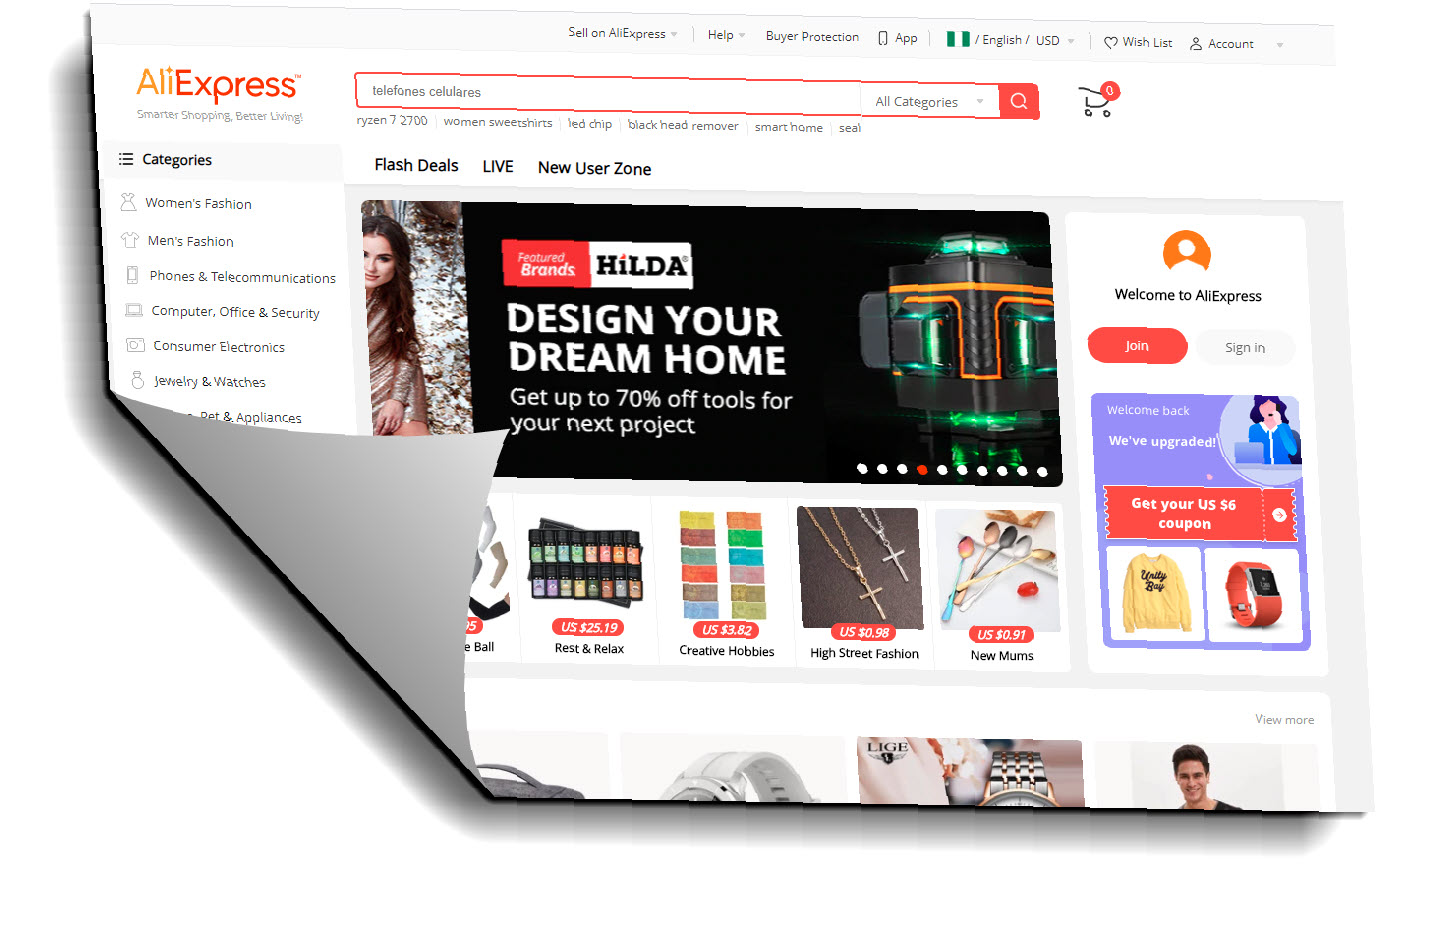 AliExpress Ecommerce websites